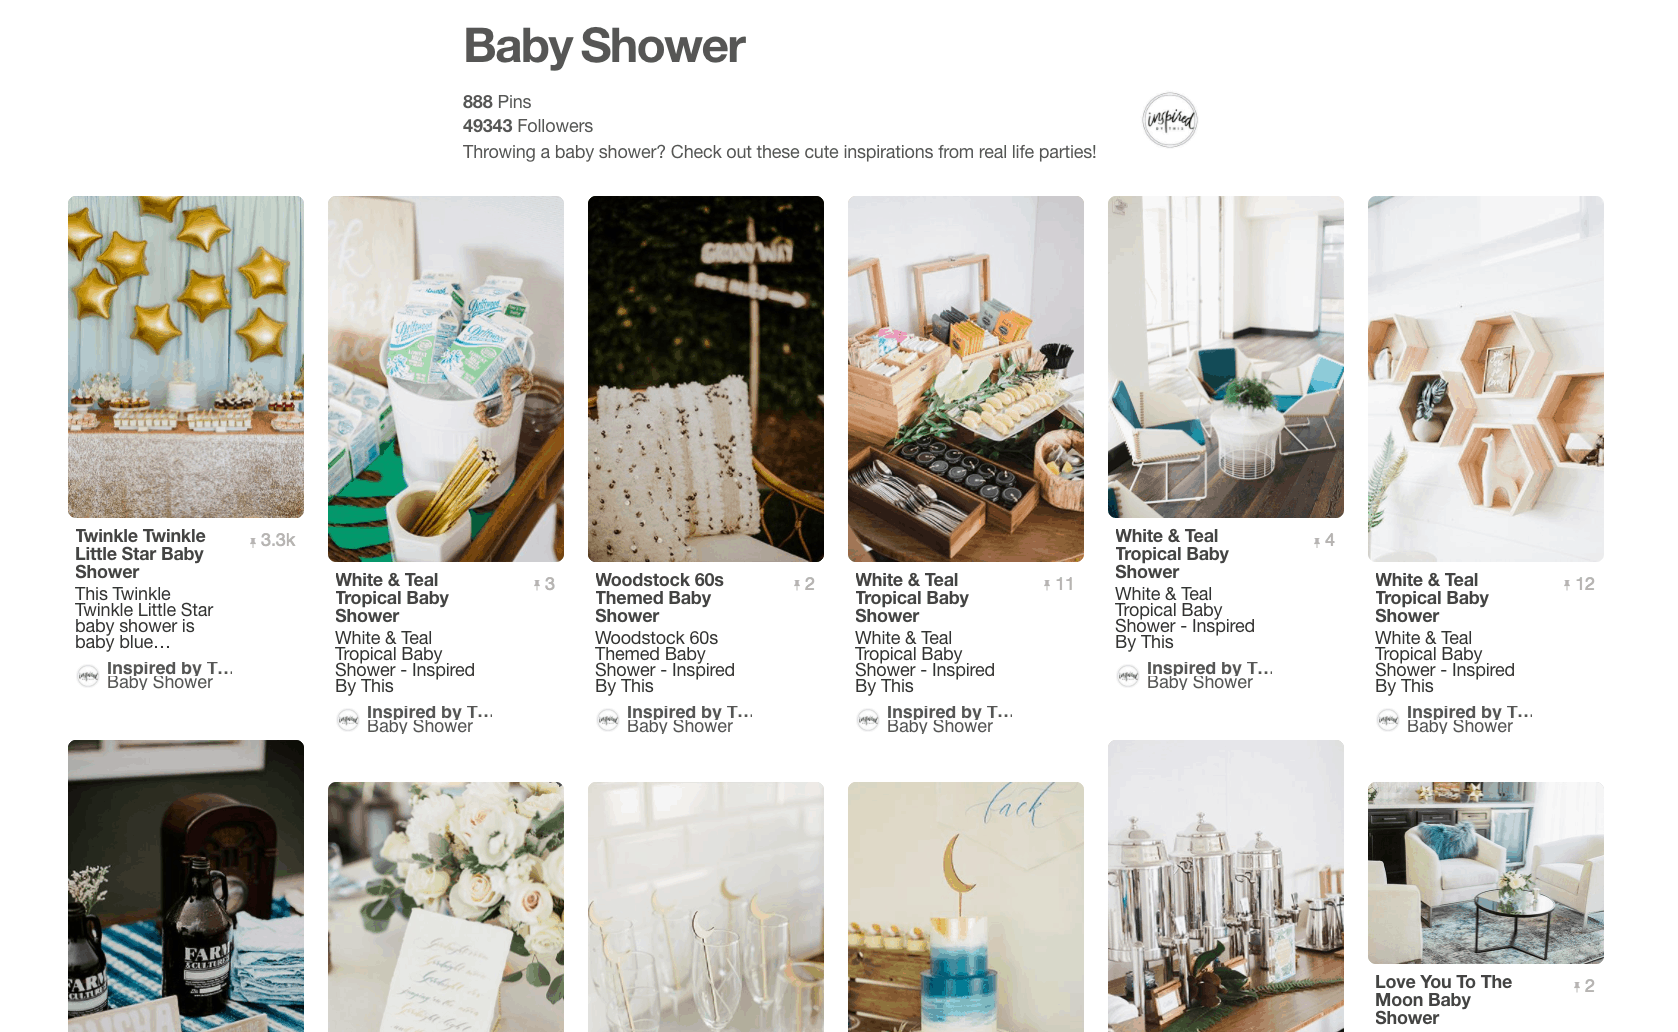 Collage of baby shower ideas.